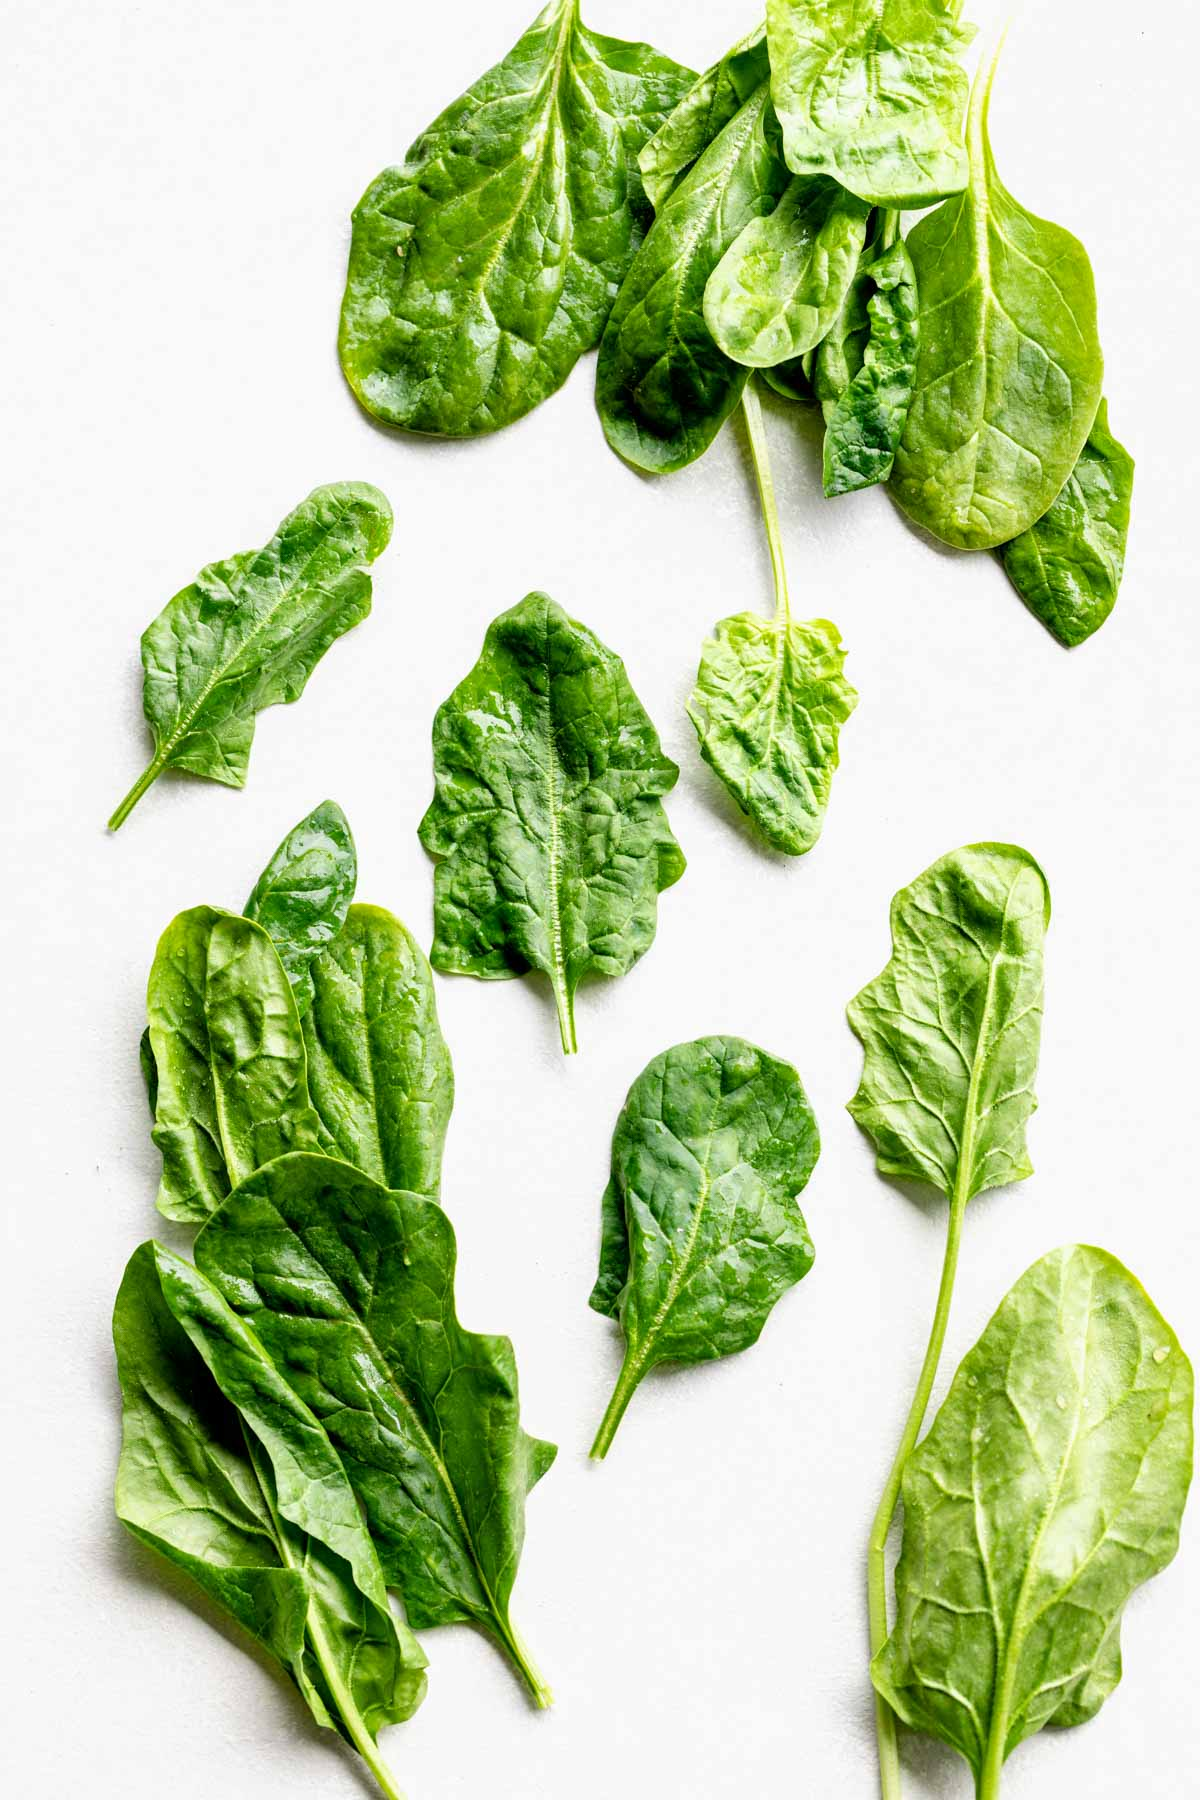 variety of spinach leaves on a white background